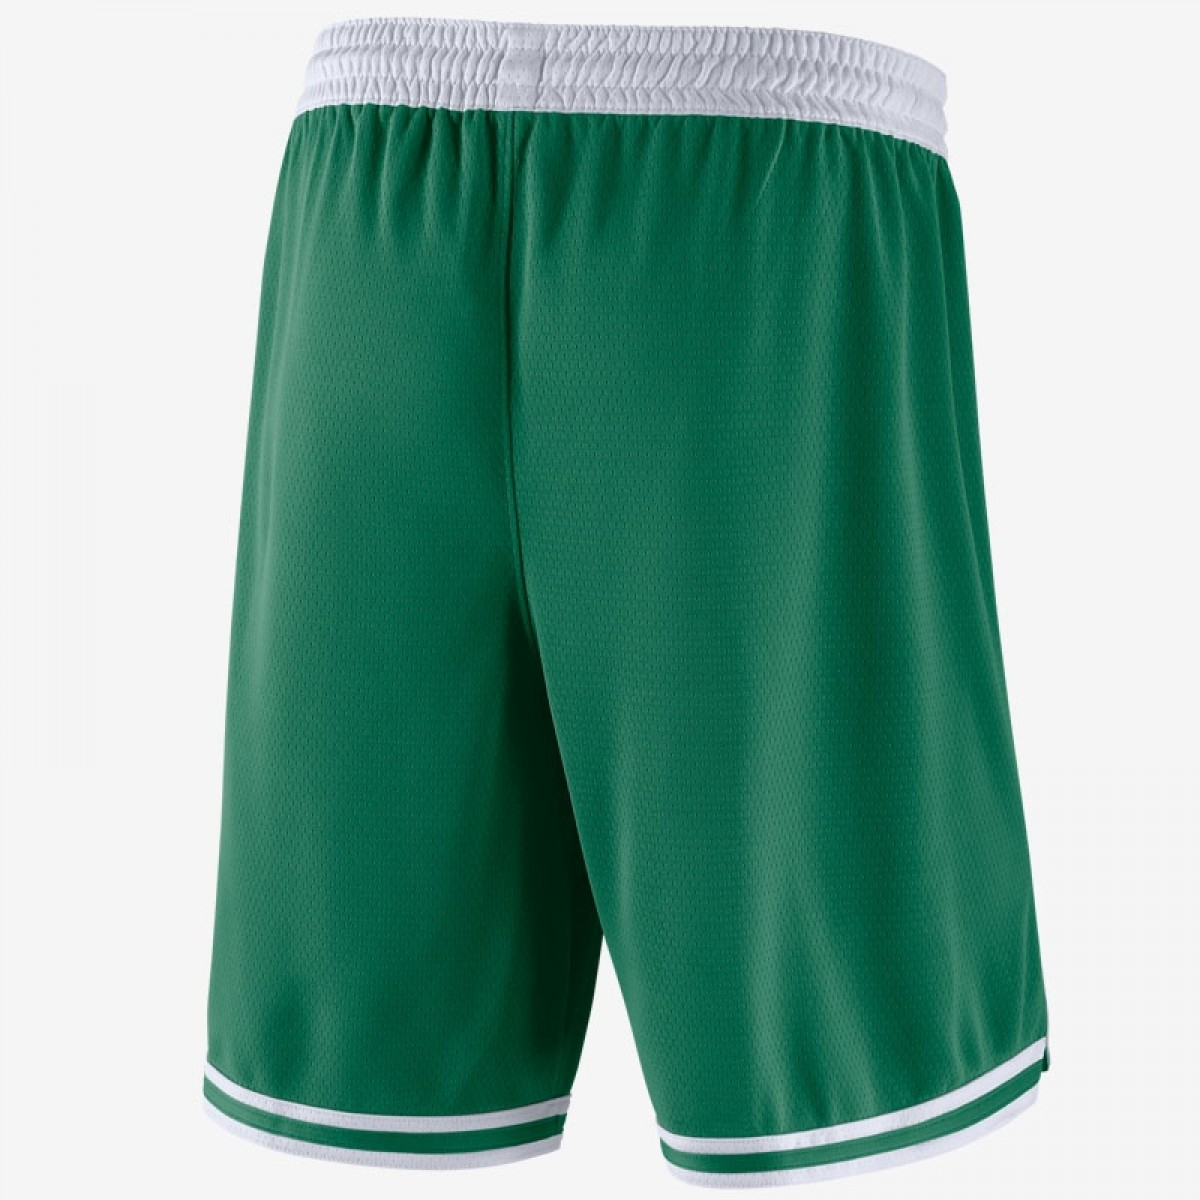 Nike NBA Boston Swingman Short 'Icon Edition' AJ5587-312